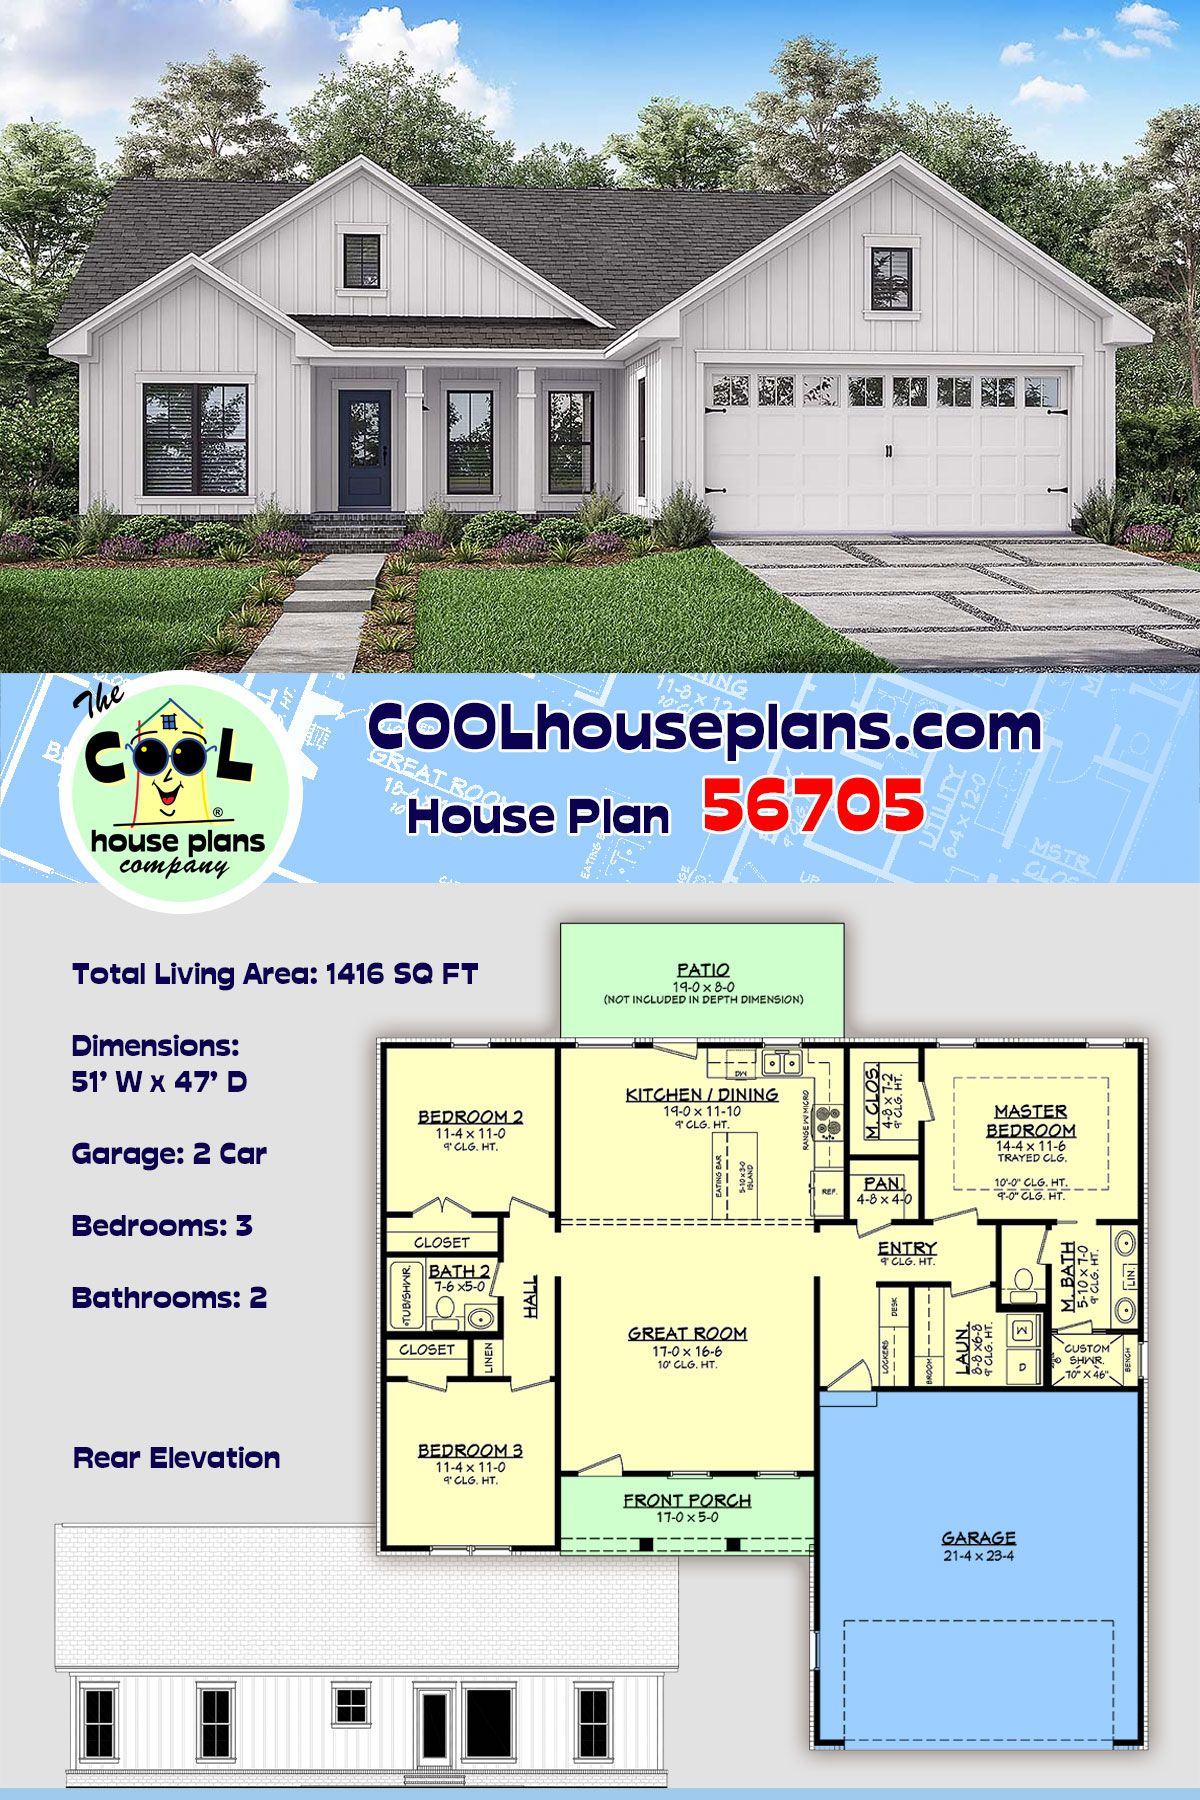 Traditional Style House Plan 56705 With 3 Bed 2 Bath 2 Car Garage House Plans Best House Plans Ranch House Plans